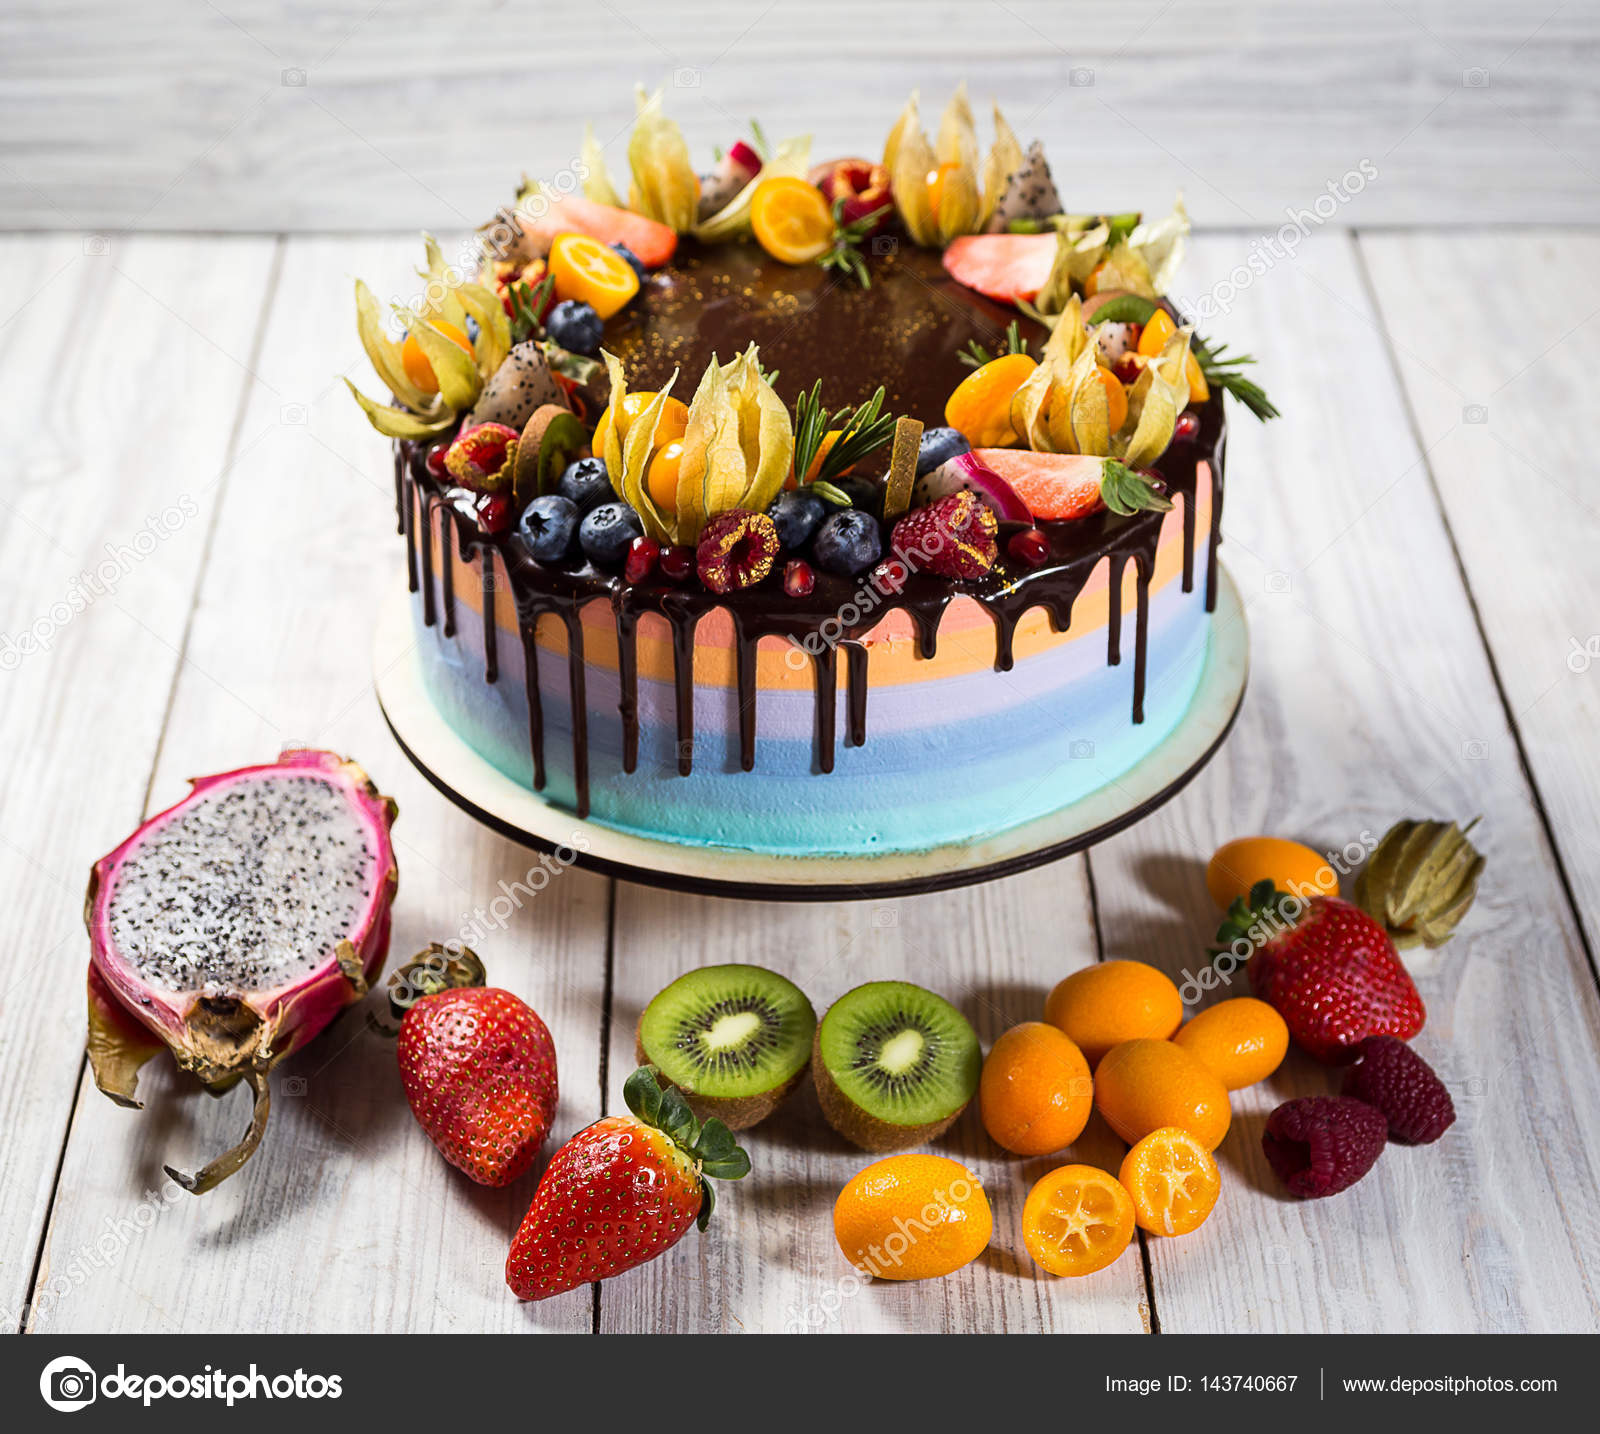 Colourful Fruit Cake: Chocolate Cupcakes With Colored Layers, Decorated With